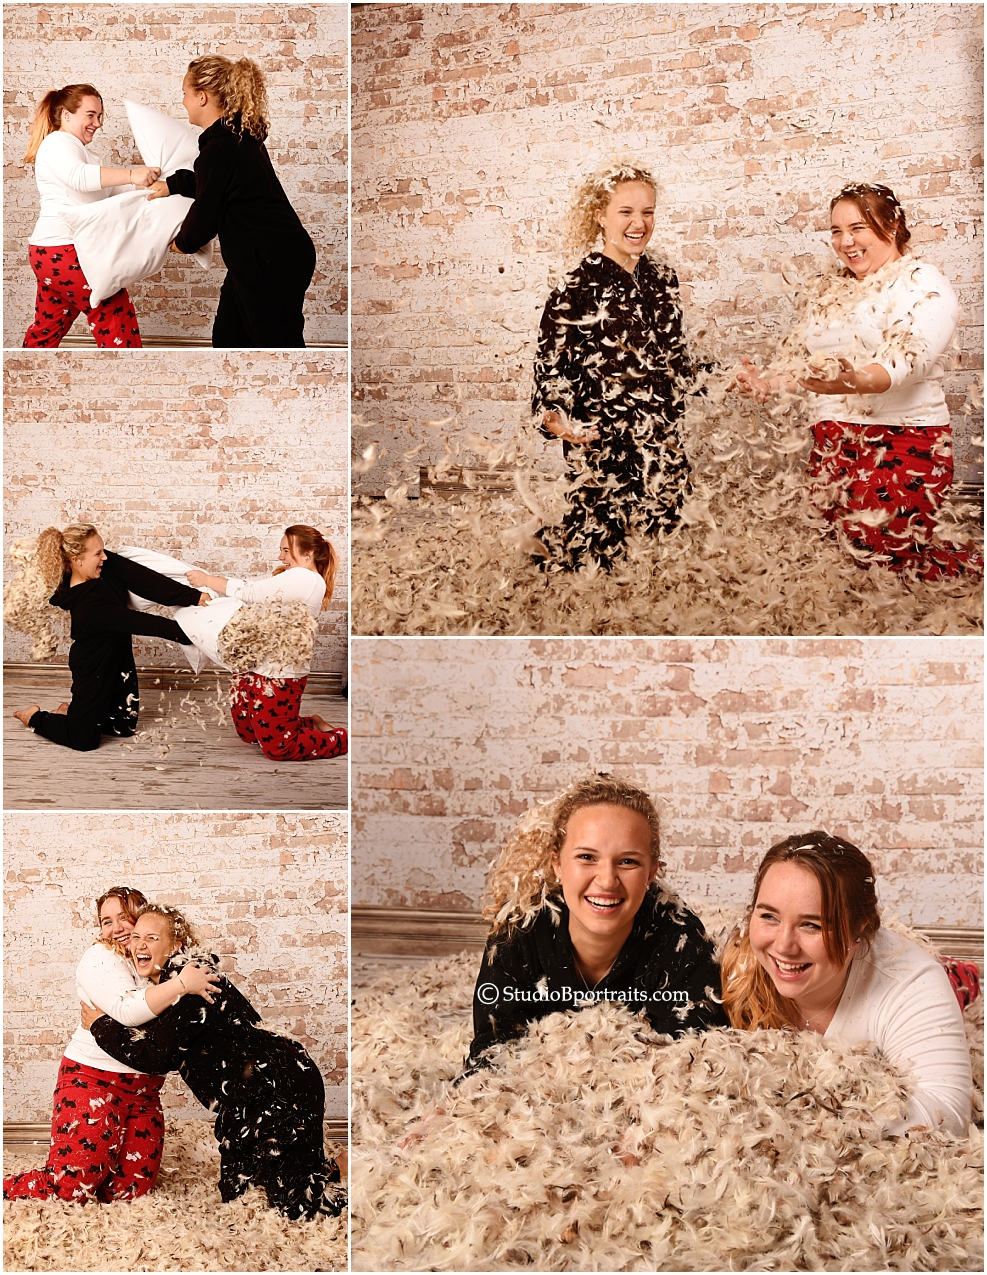 Feathers flying during faily portrait pillow fight